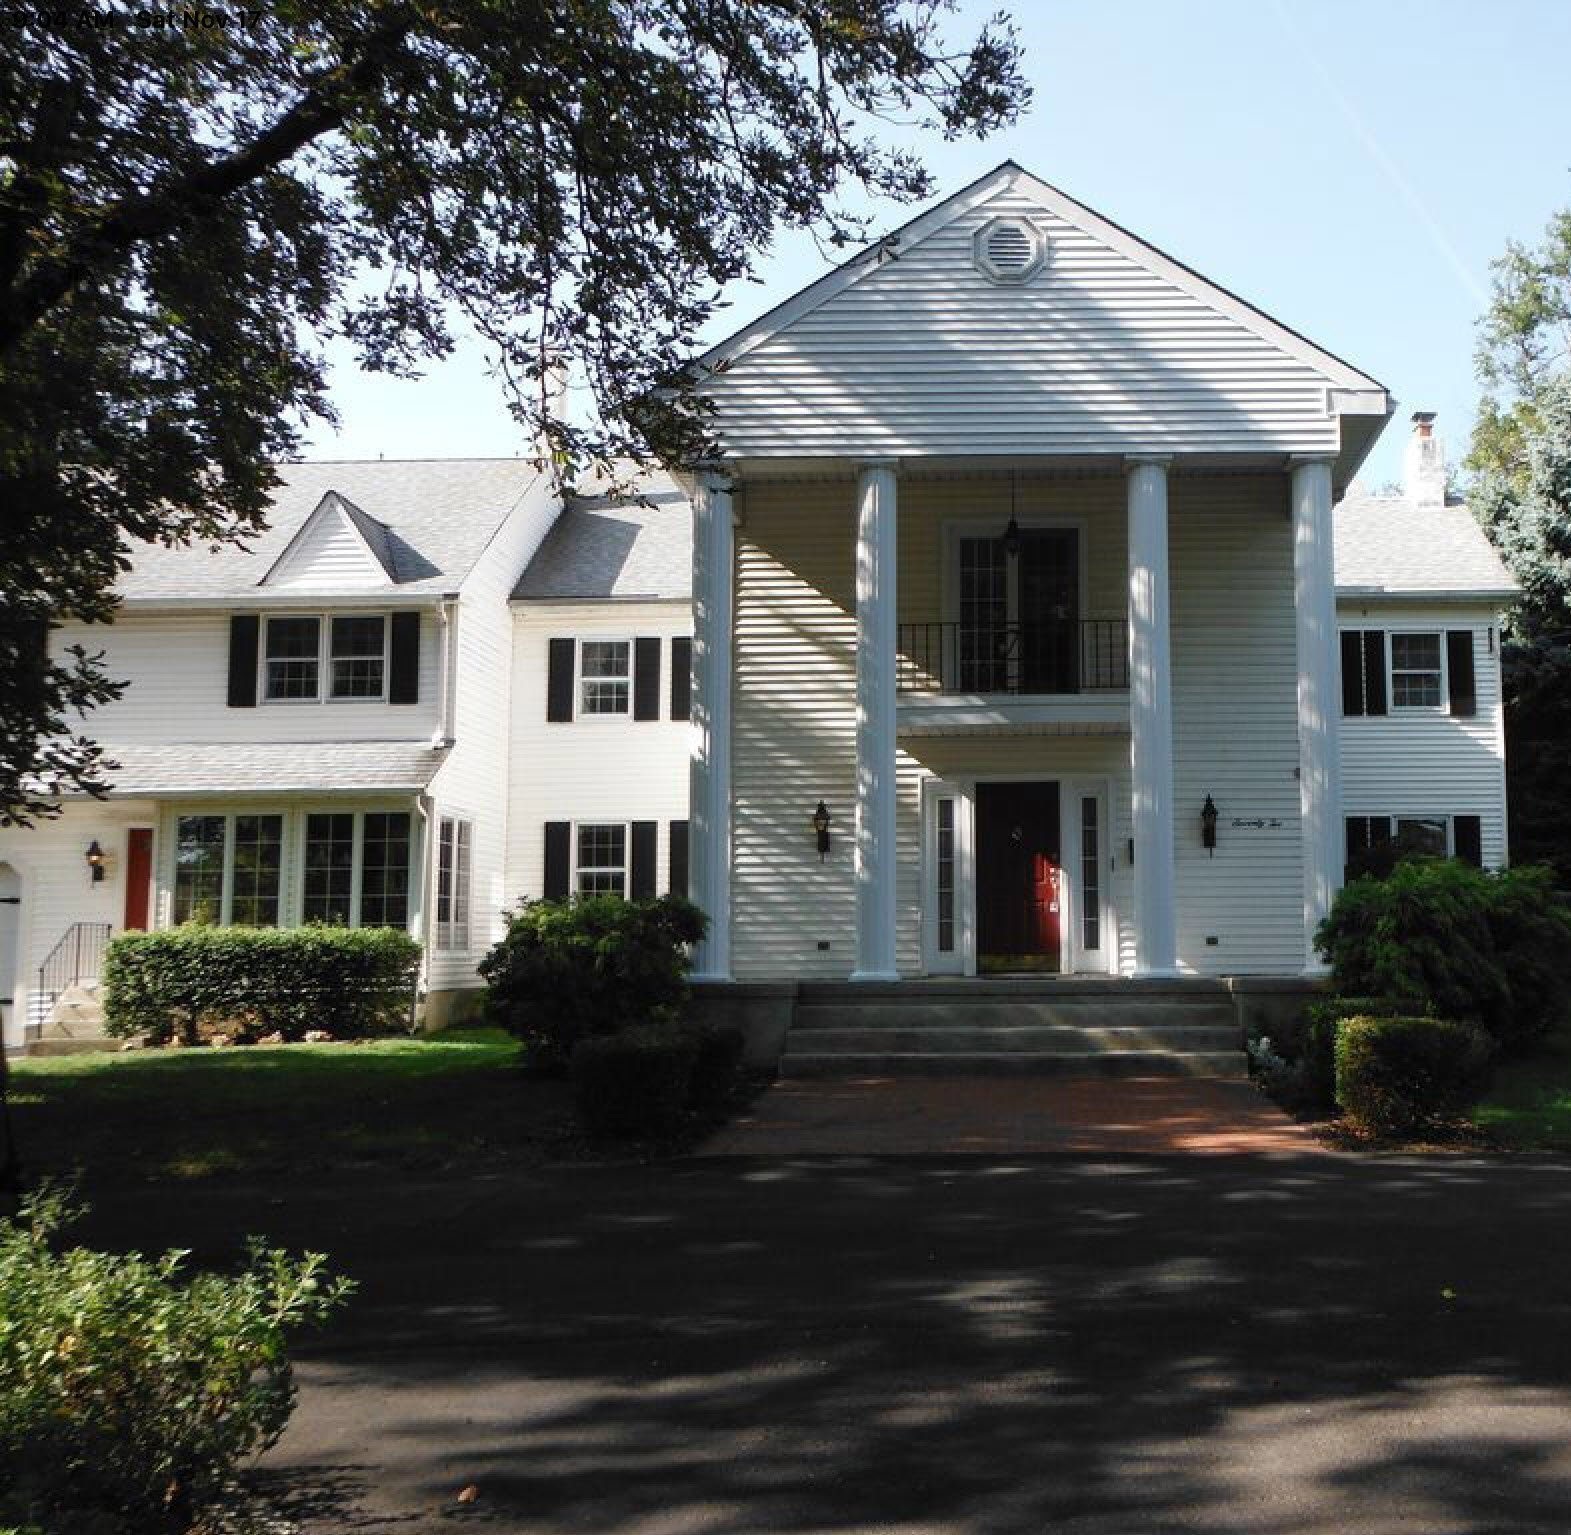 Hillside sober living recovery residence in Levittown, Pennsylvania